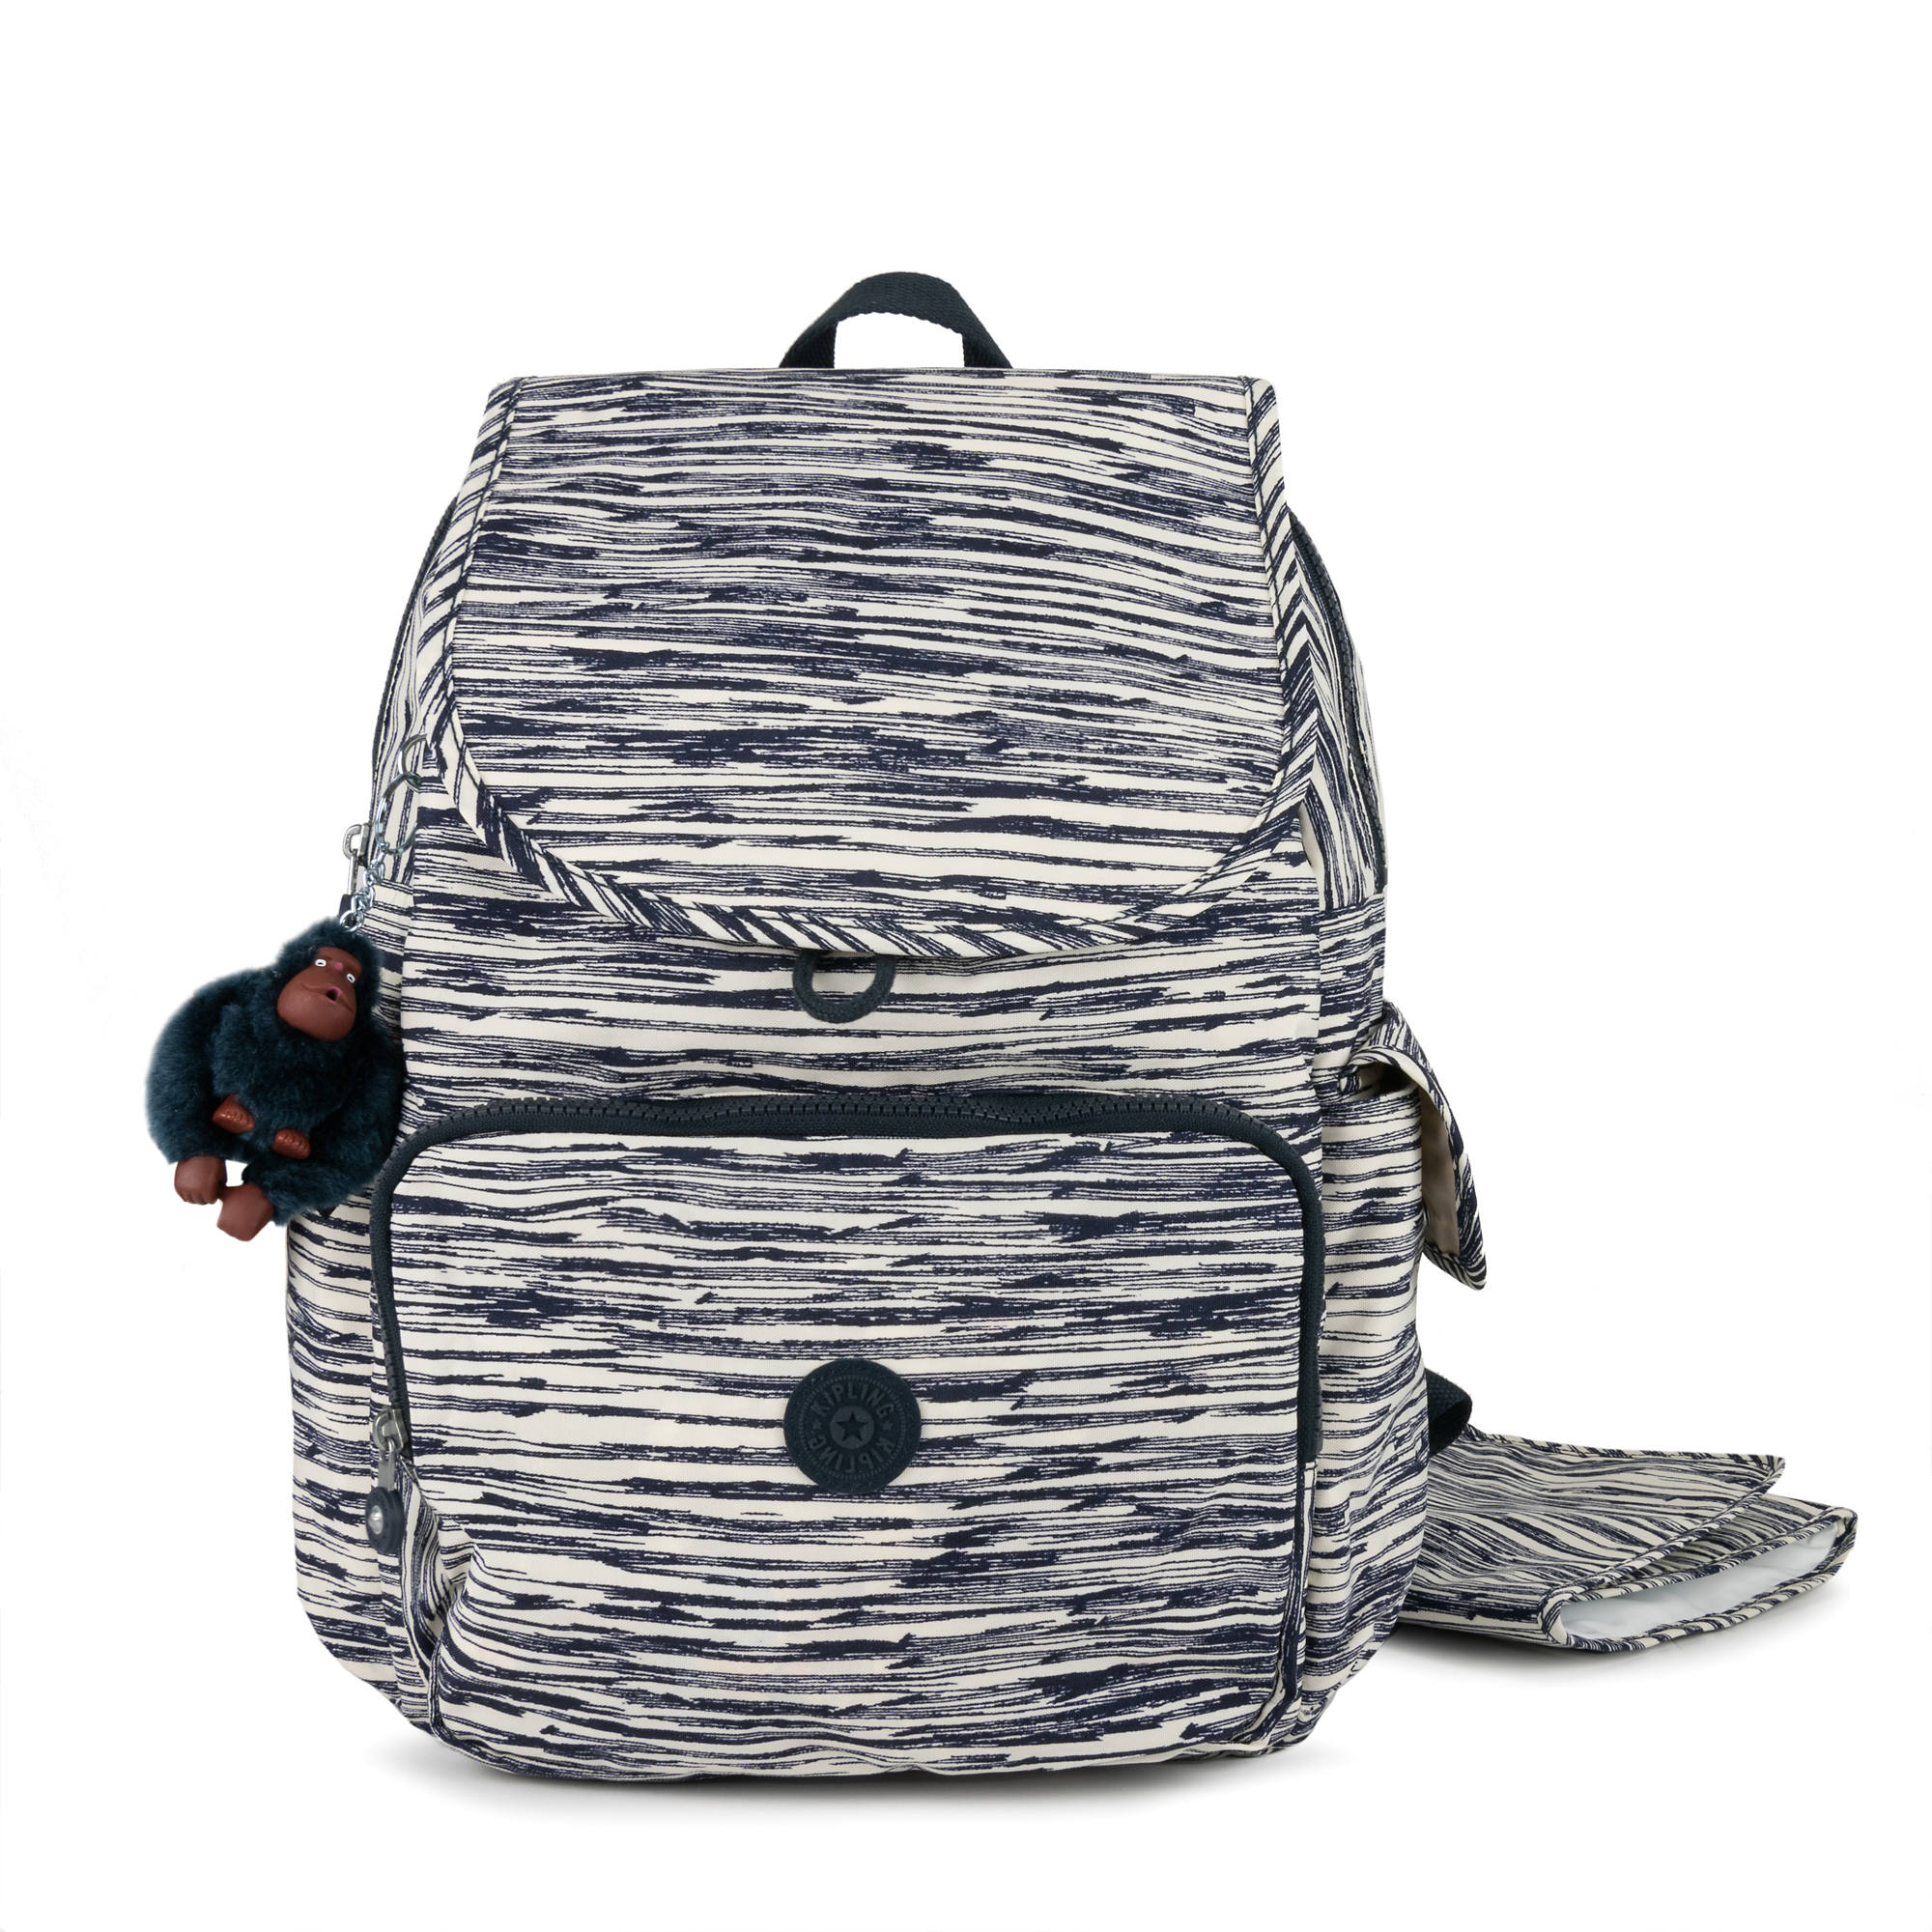 separation shoes great discount sale good selling Zax Printed Backpack Diaper Bag